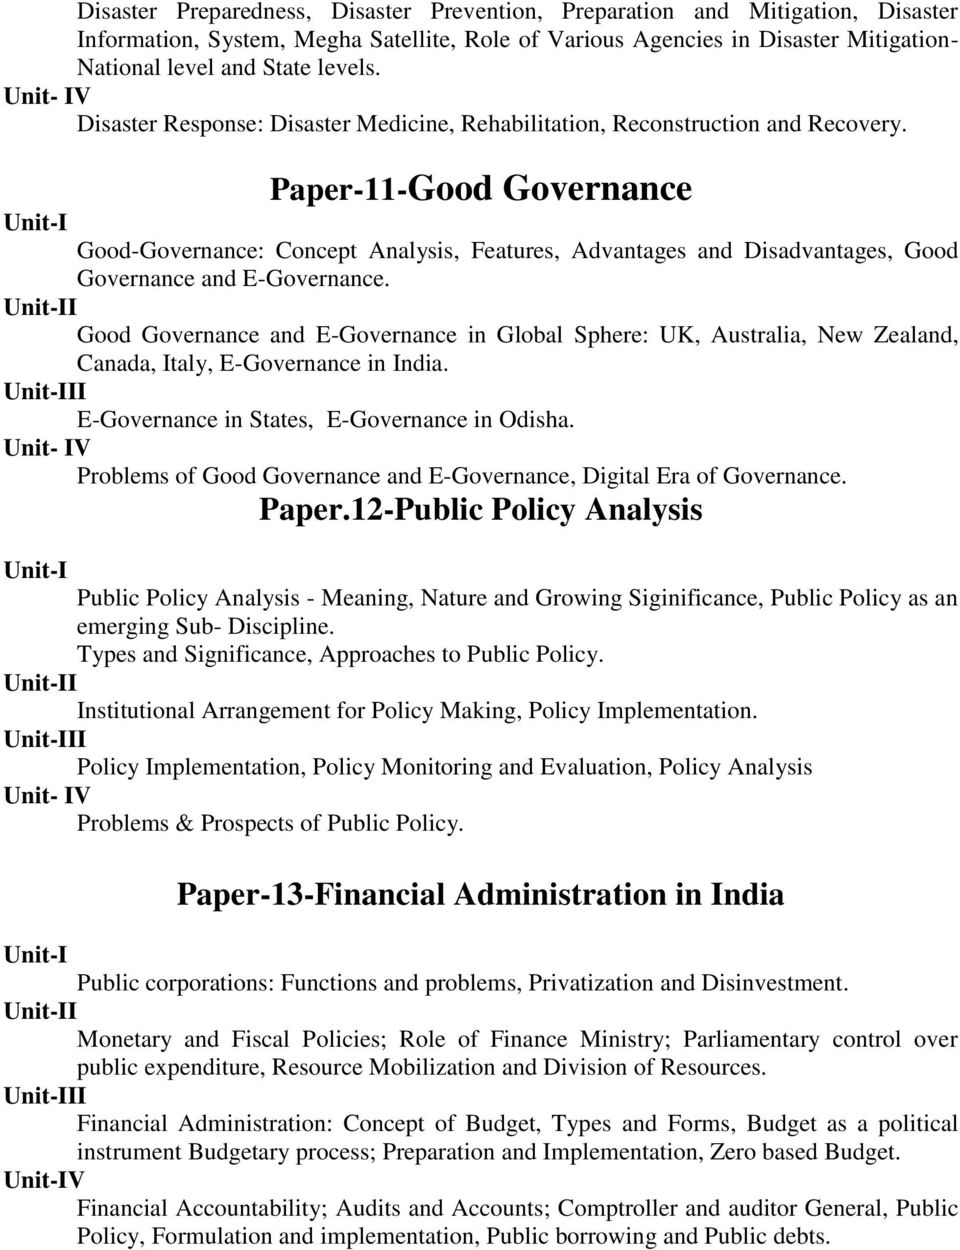 Paper-11-Good Governance Good-Governance: Concept Analysis, Features, Advantages and Disadvantages, Good Governance and E-Governance.